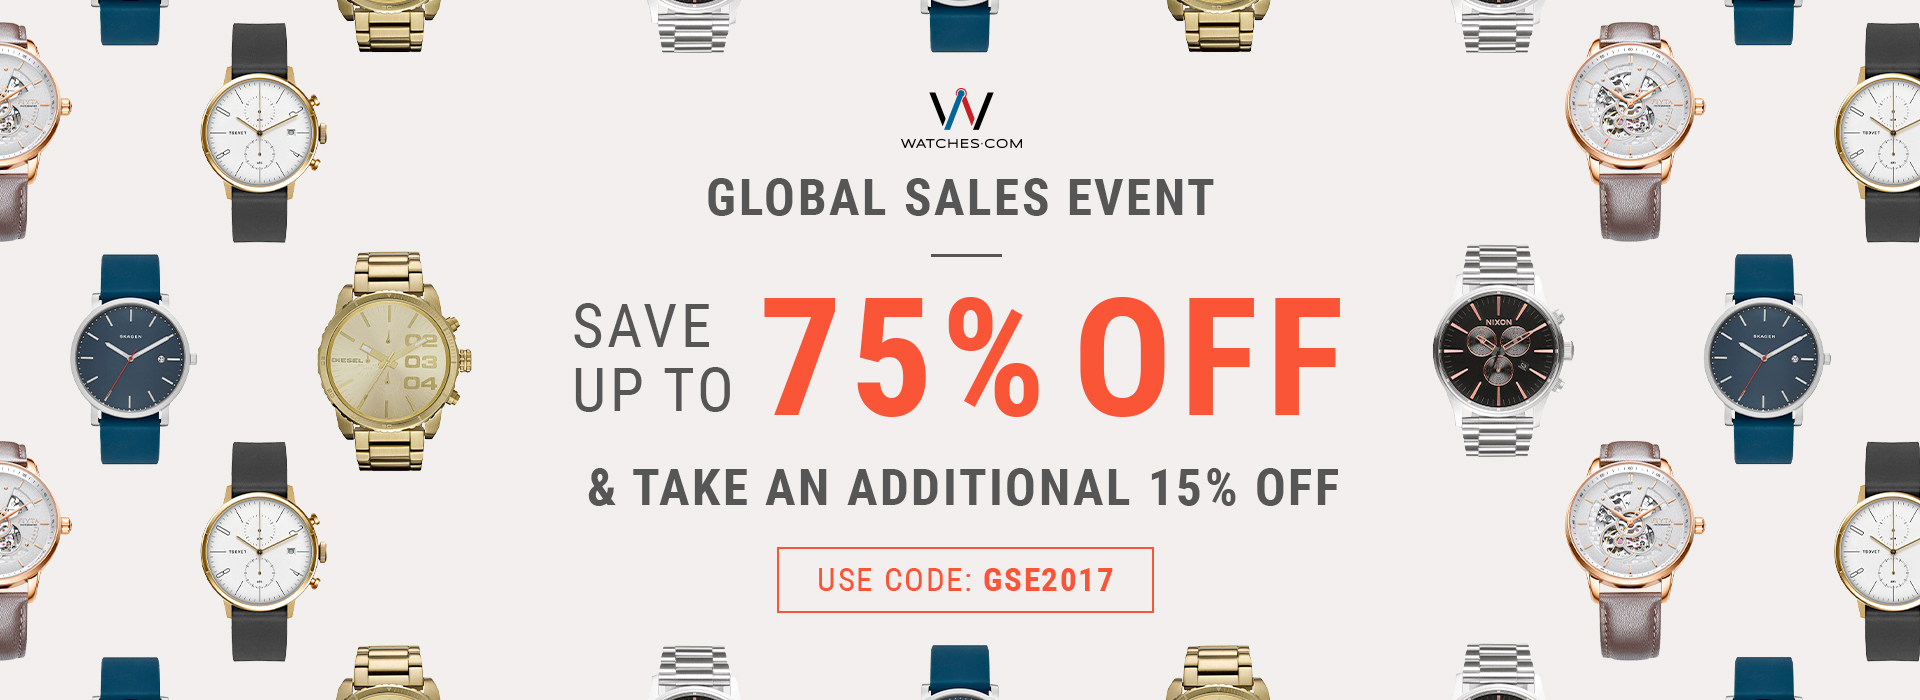 watches.com global sales event